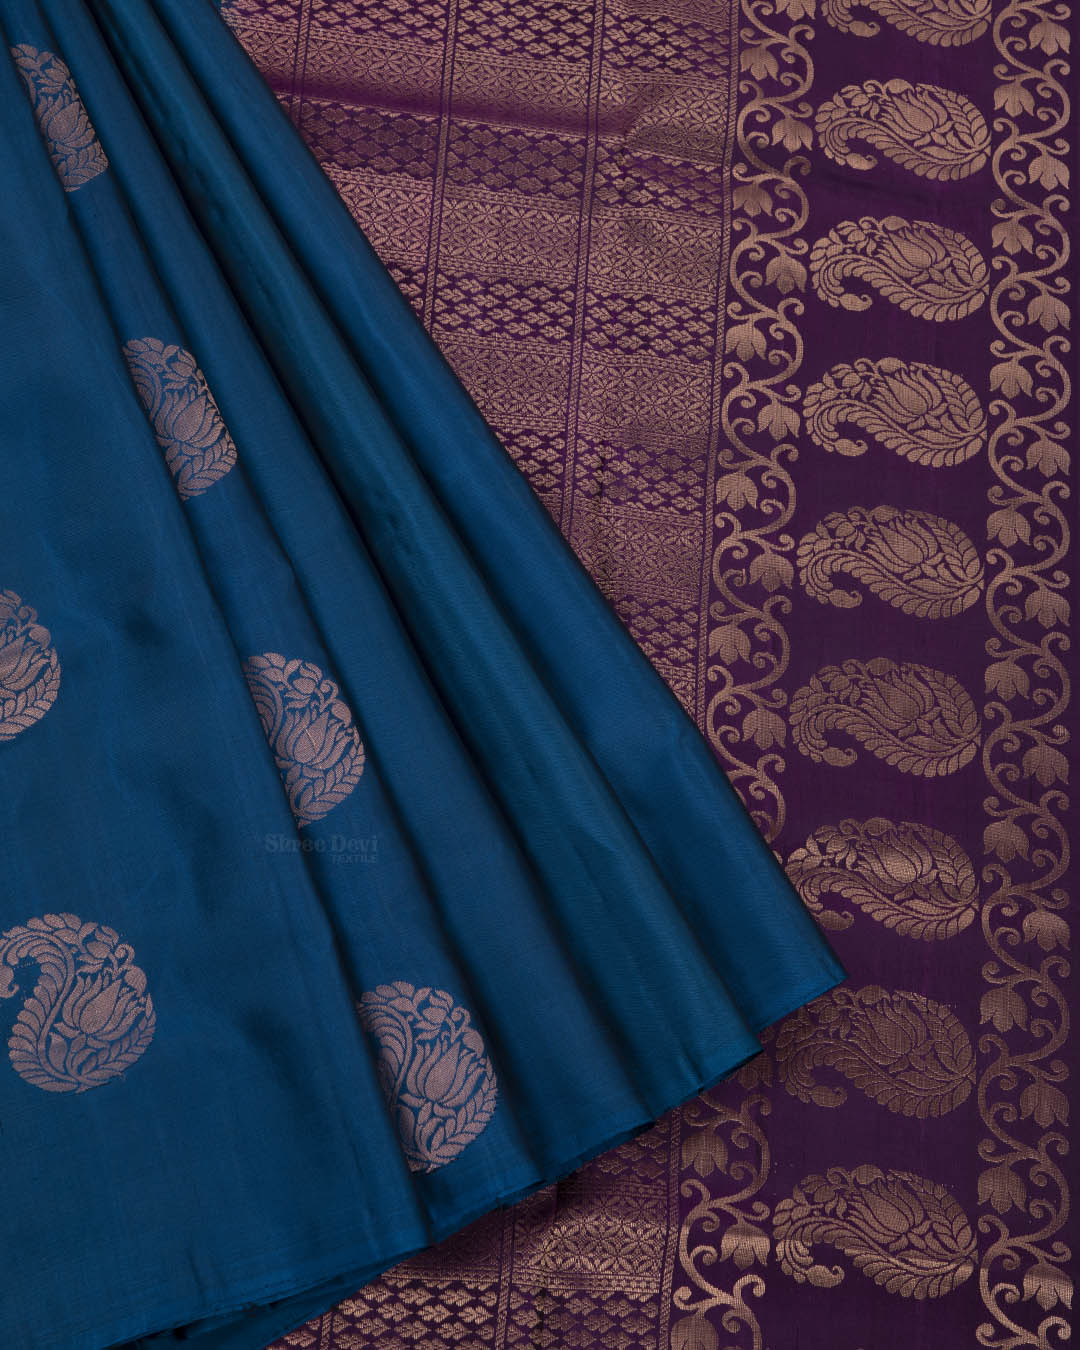 Prussian Blue Elite Motif Kancheevarams Silk Saree with Mango Zari Motifs